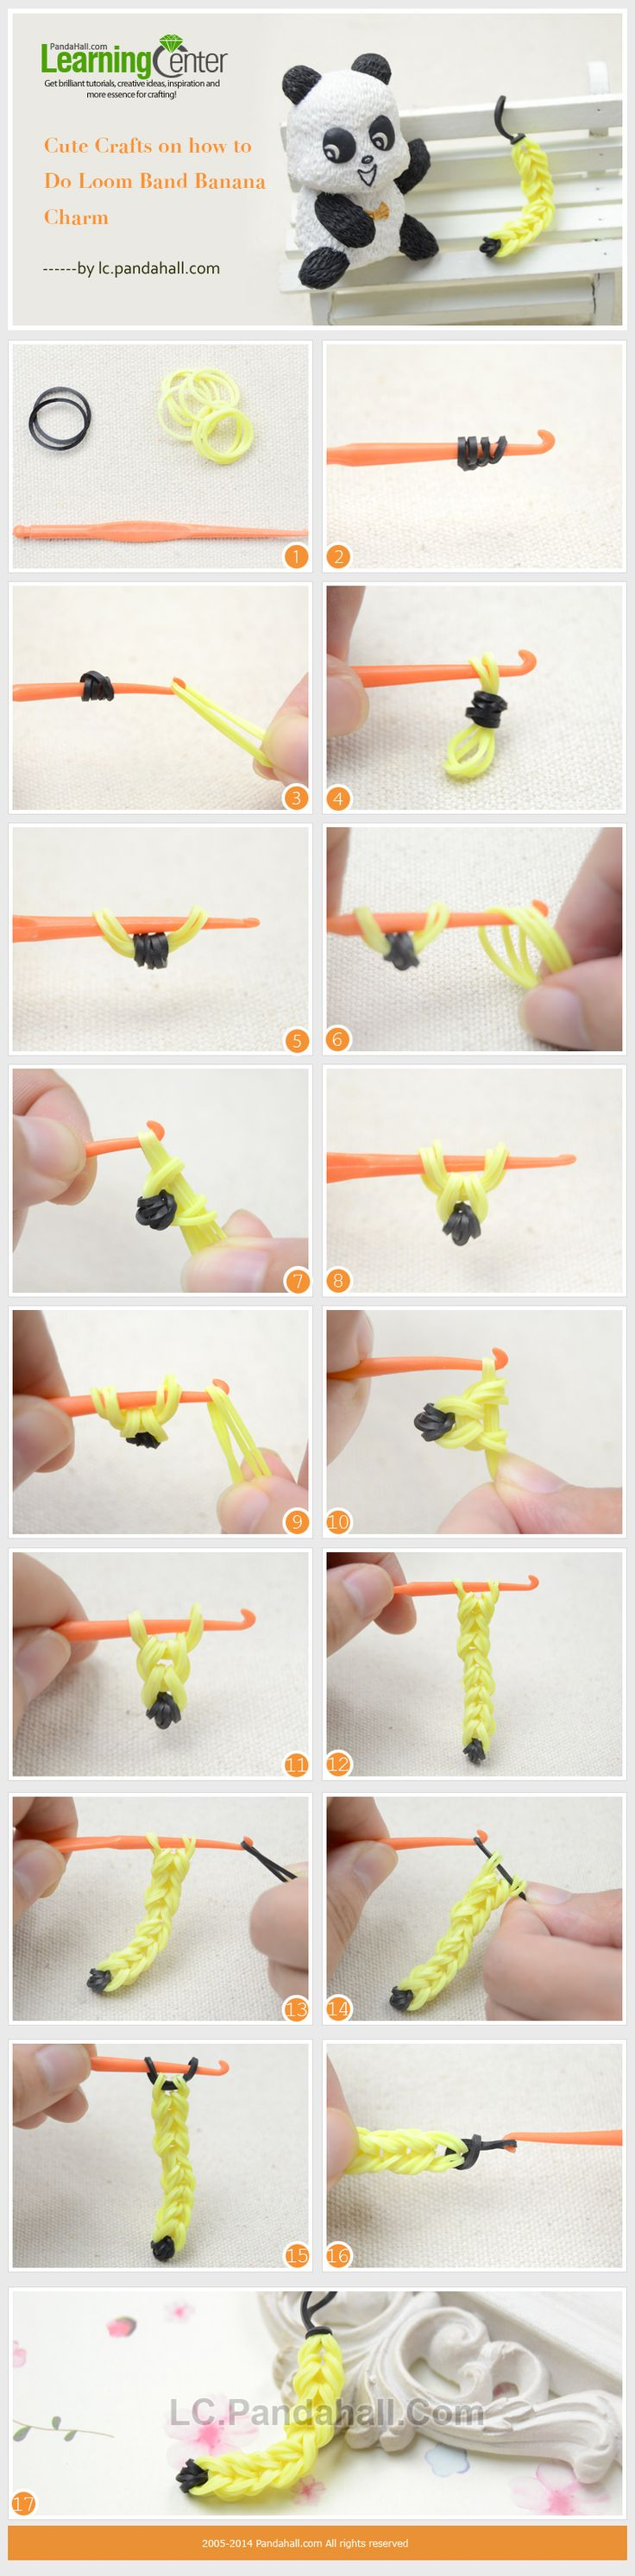 Cute Crafts on how to Do Loom Band Banana Charm - Machines et élastiques : http://www.creactivites.com/268-elastiques-loom